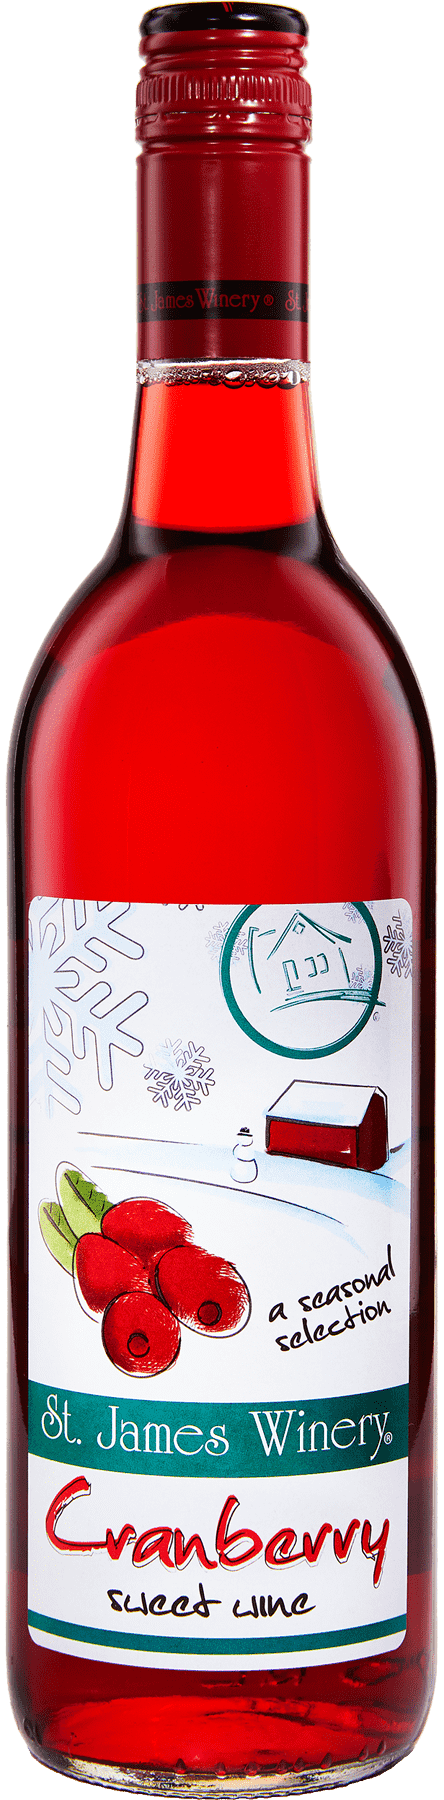 Cranberry Sweet Wine - St. James Winery Missouri